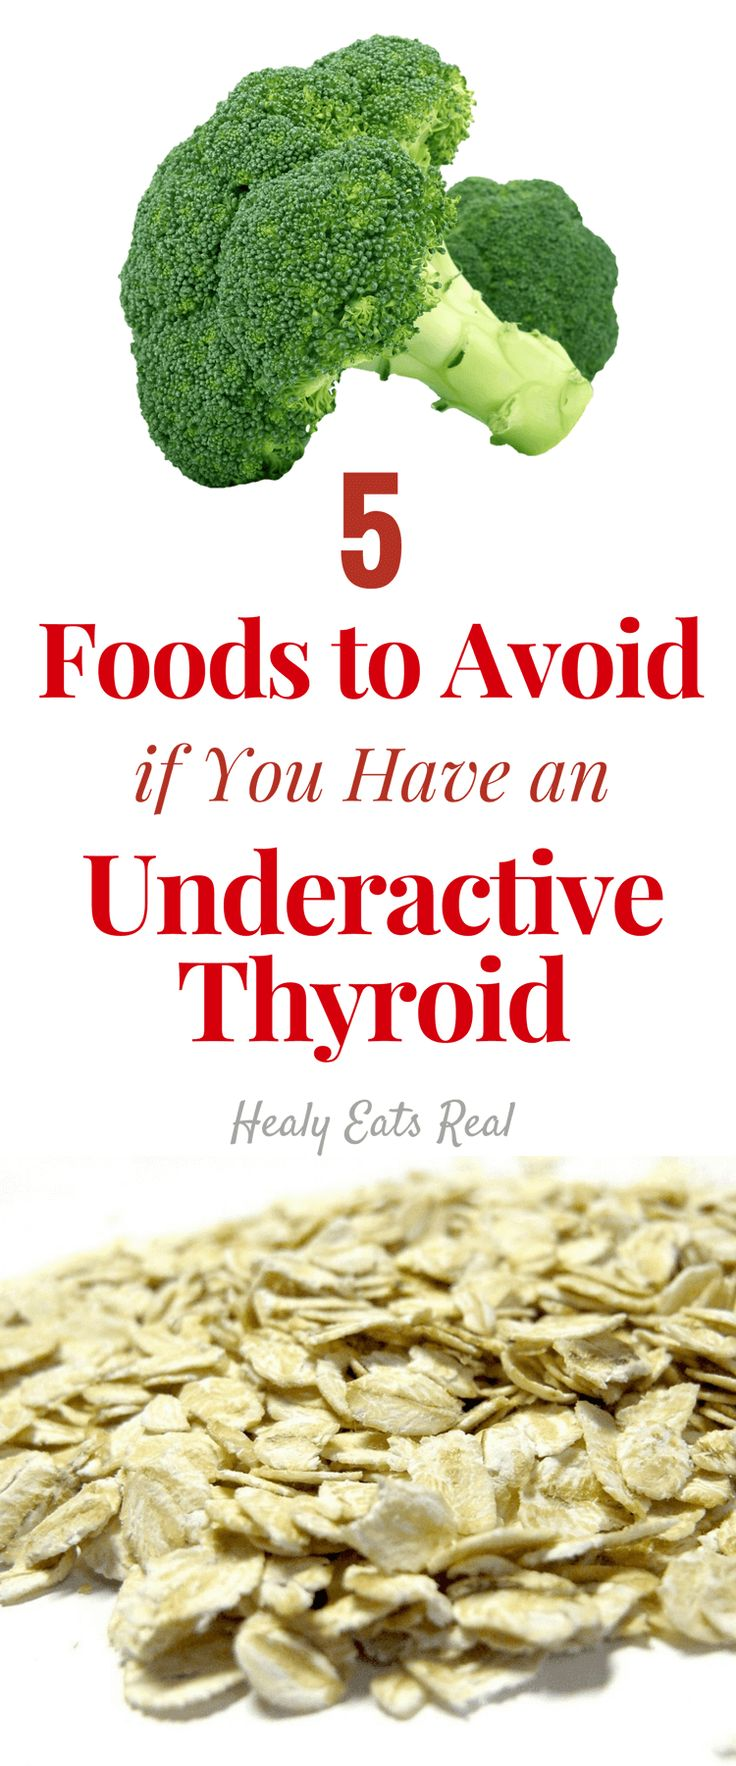 Foods to Avoid for an Underactive Thyroid Diet--- If you have hypothyroidism or hashimoto's watch out for these foods!